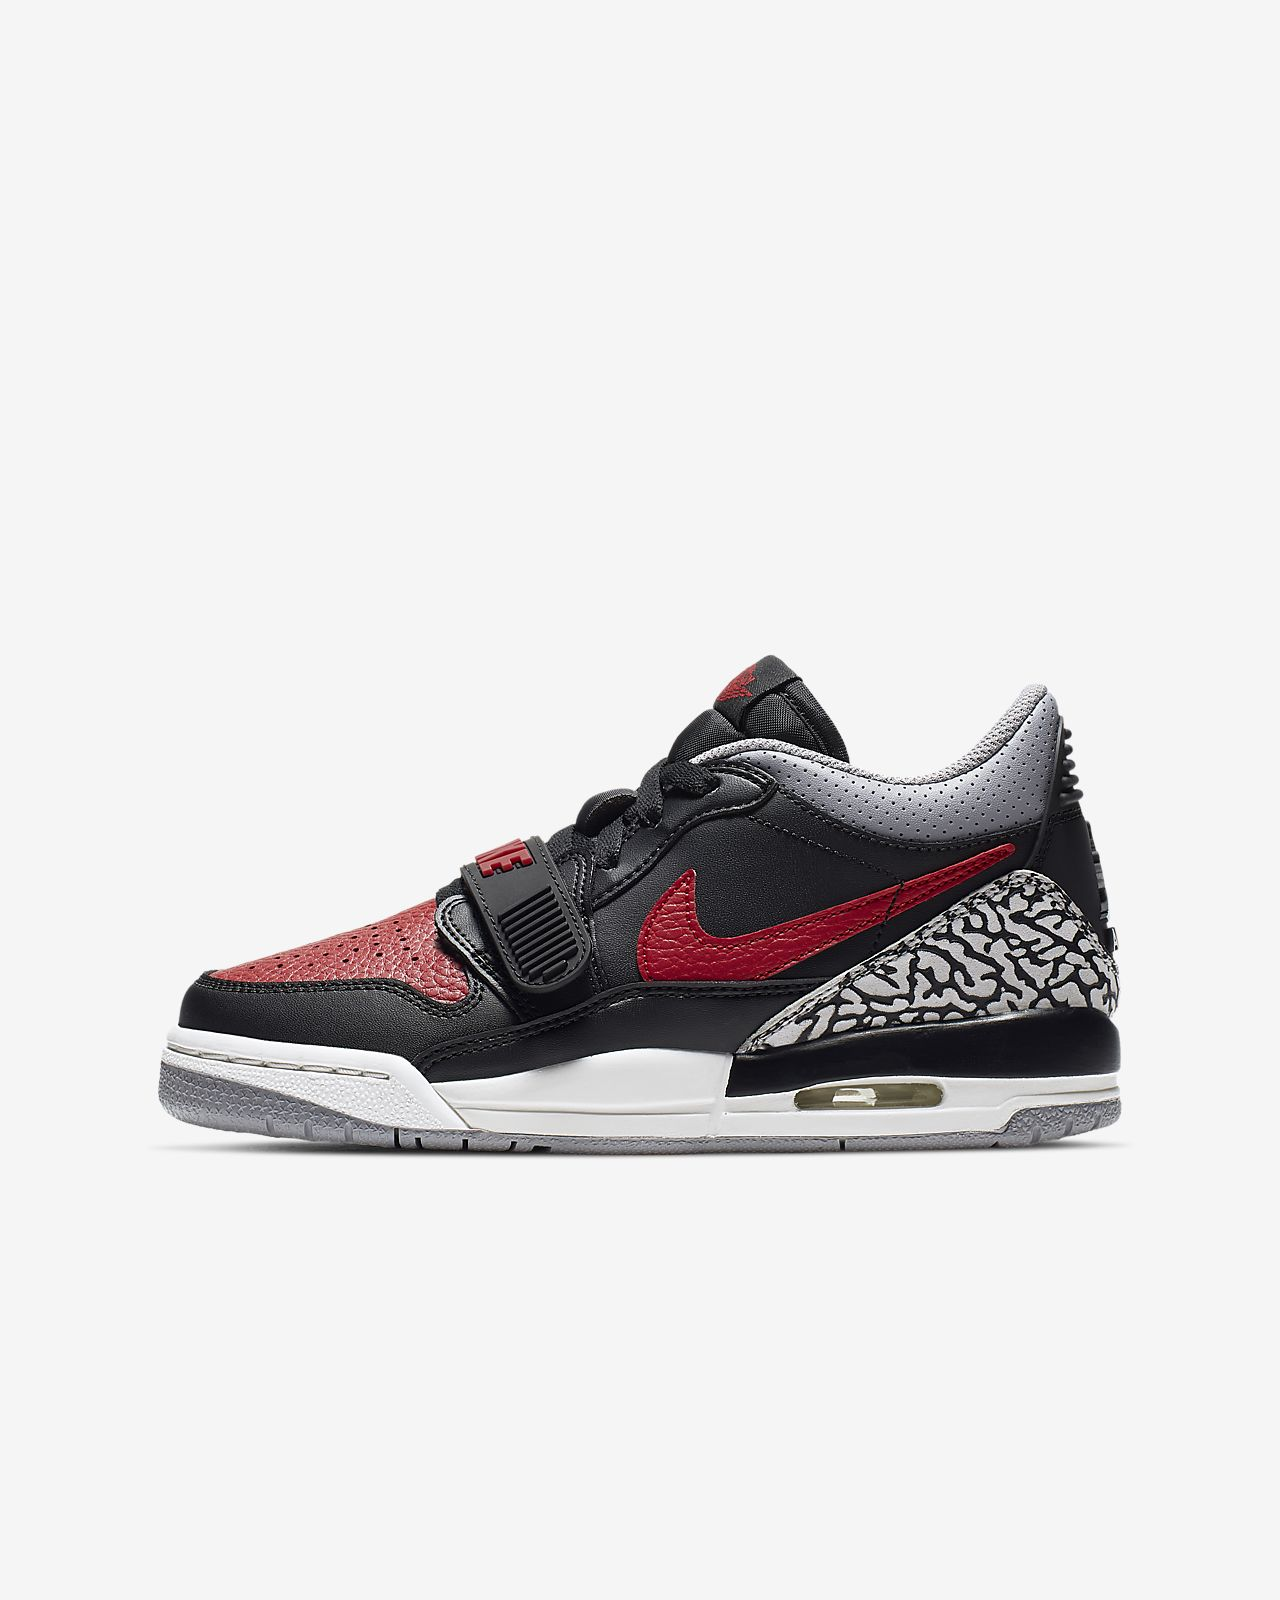 Air Jordan Legacy 312 Low Kinderschoen